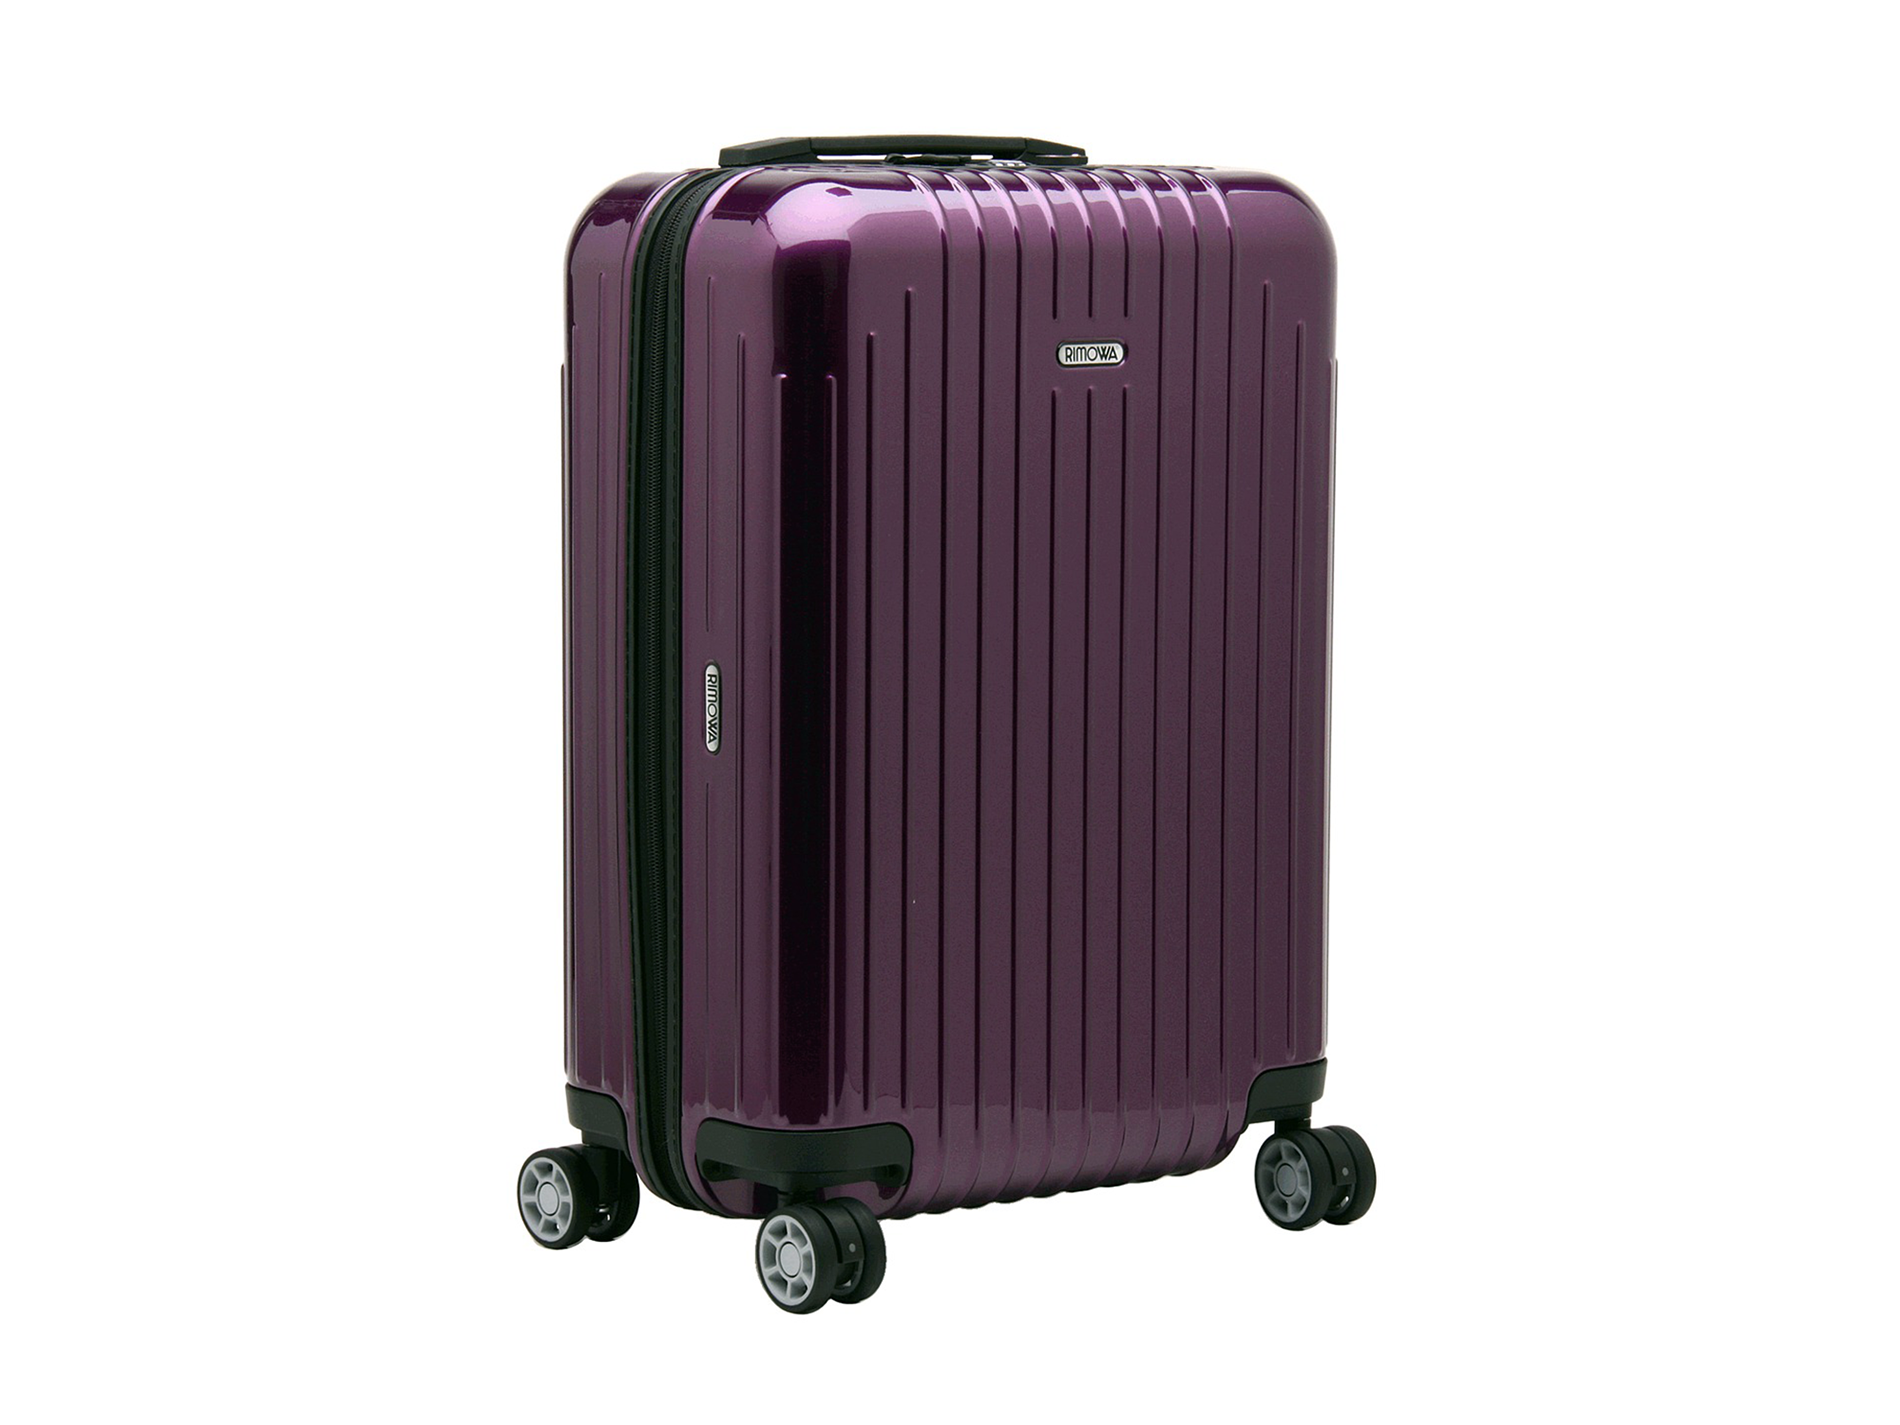 designapplause rimowa salsa air ultralight. Black Bedroom Furniture Sets. Home Design Ideas